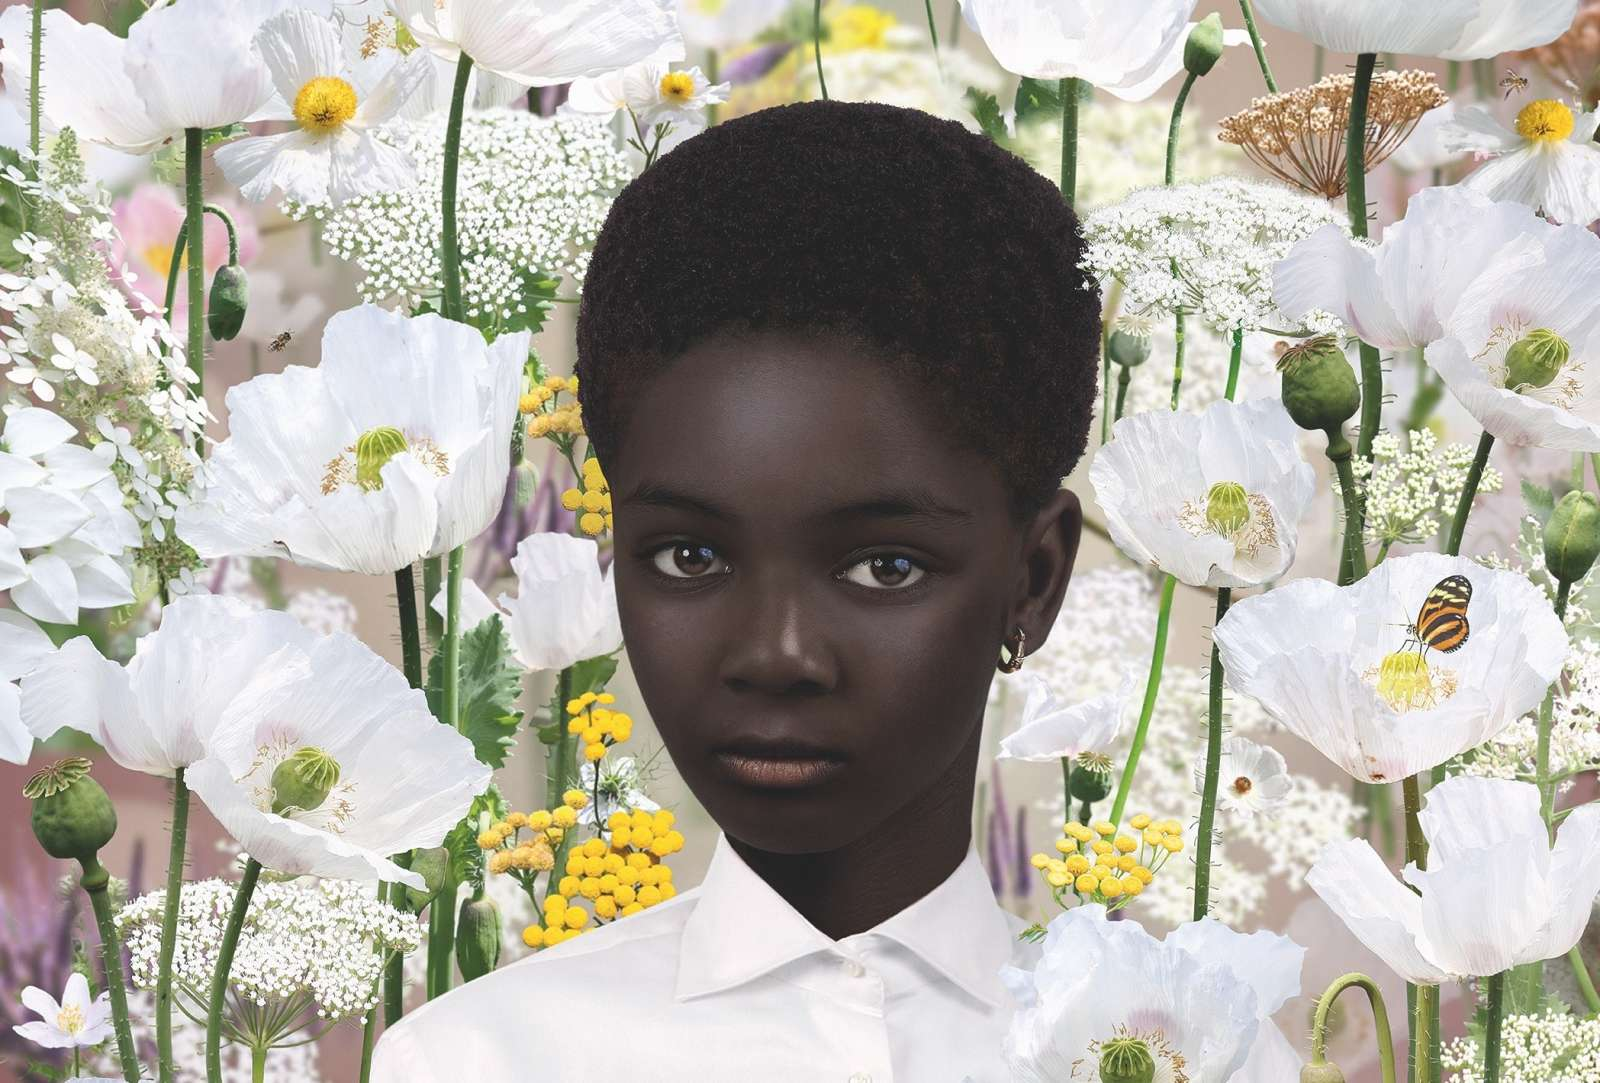 Heavenly innocence: Ruud Van Empel and the portraits from the other world.